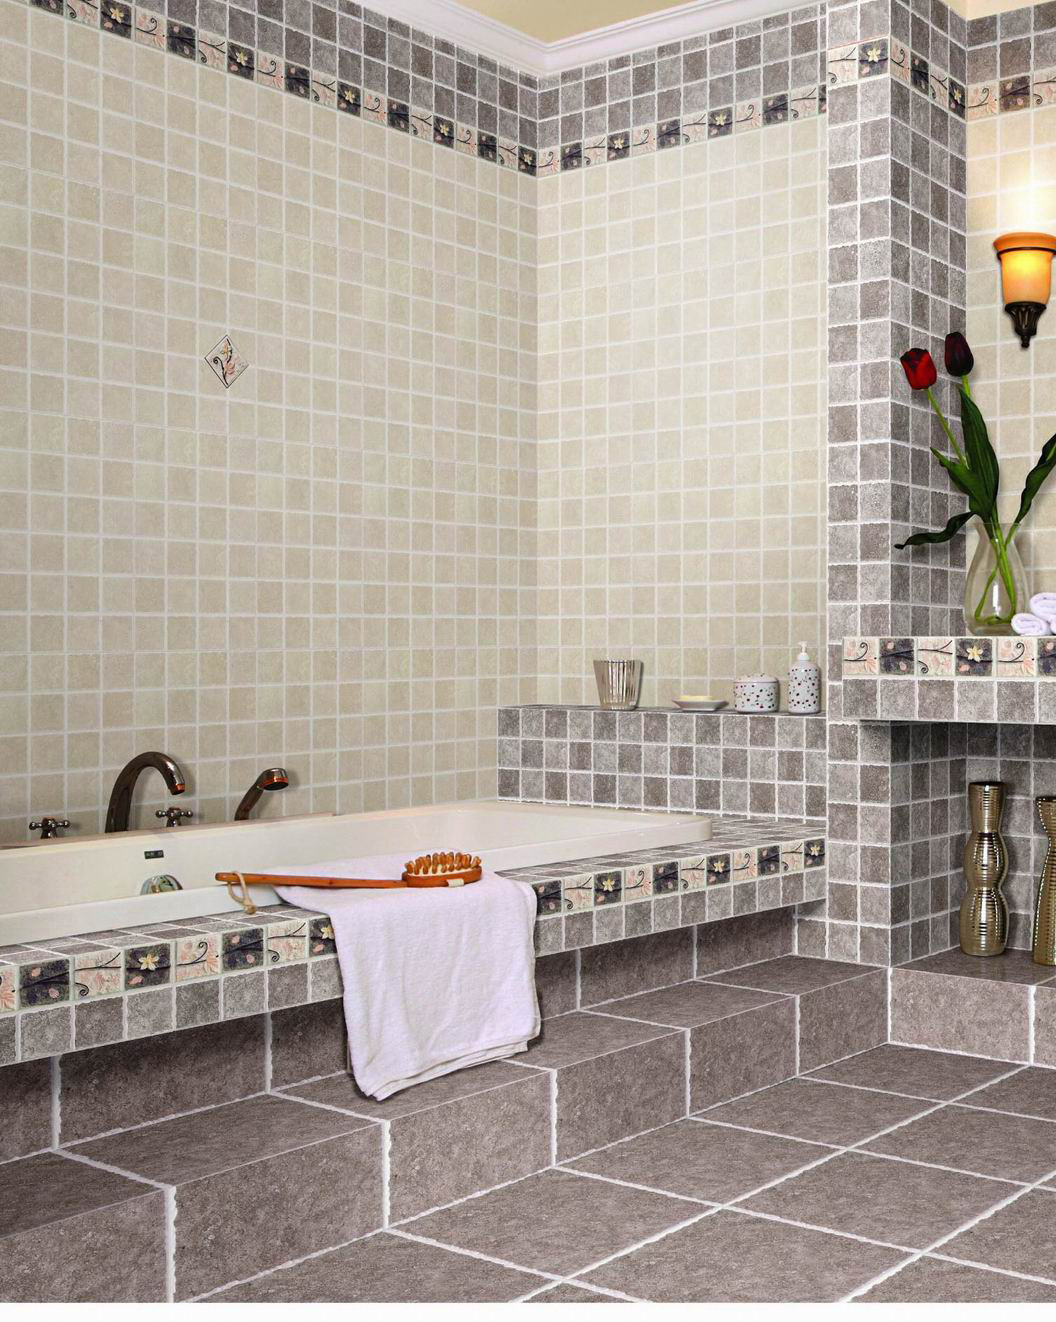 bathroom ceramic tile.  23 Bathroom Superstore Ceramic 24 nice ideas how to use ceramic tile for bathroom walls